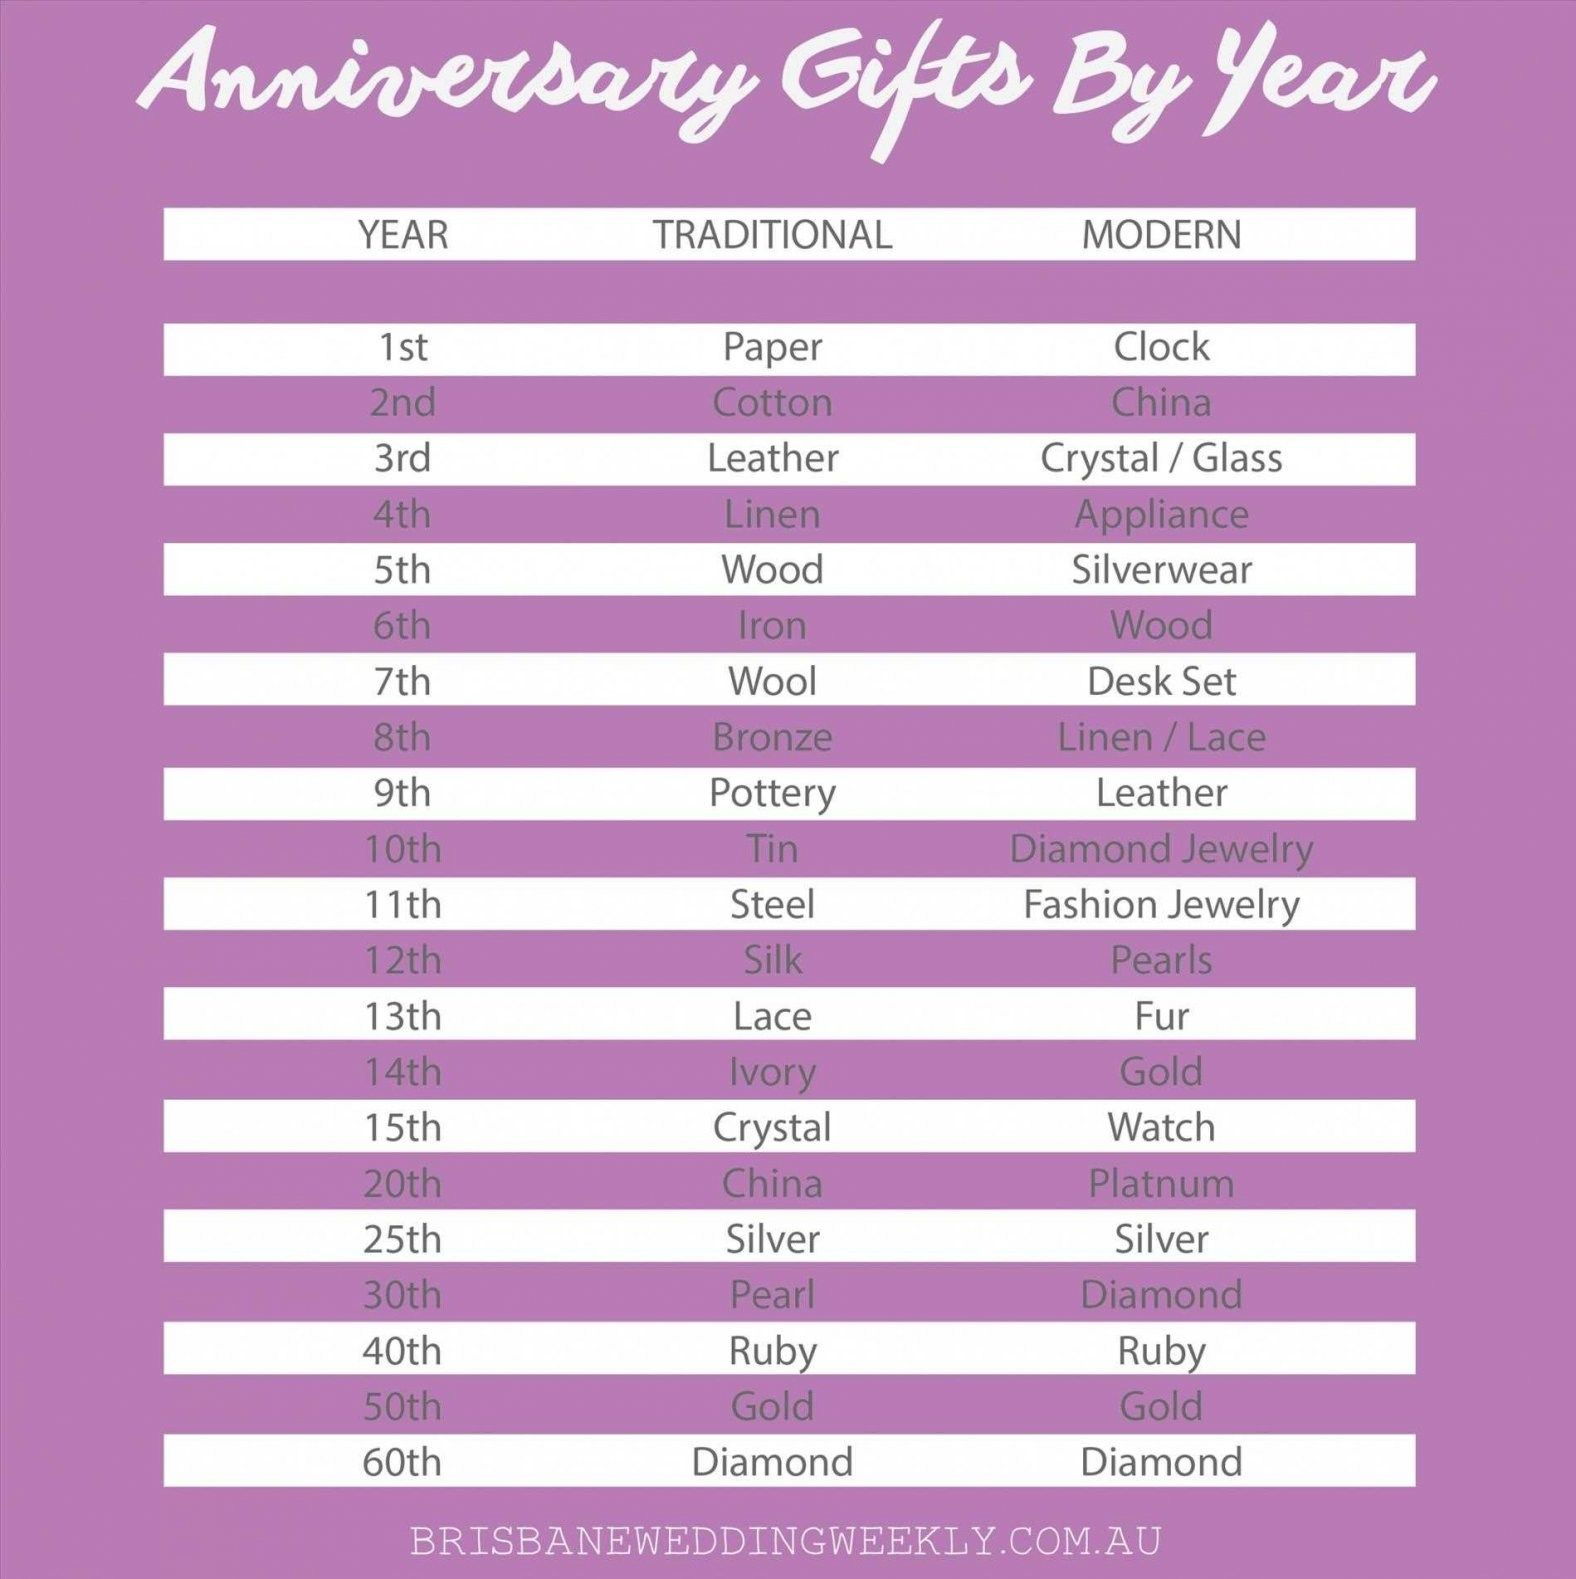 Traditional Wedding Anniversary Gifts Wedding Anniversary Gifts